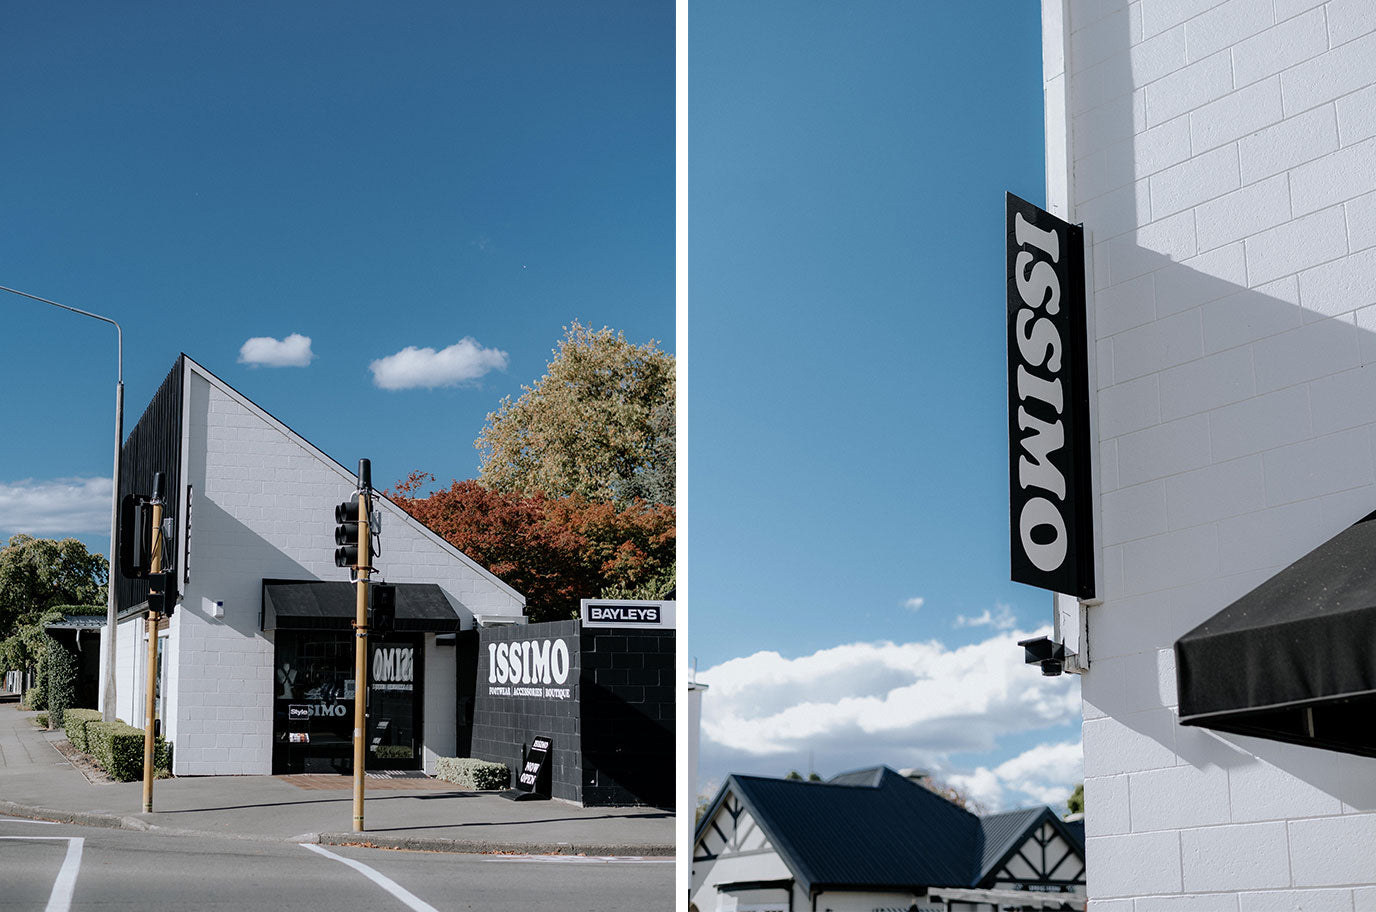 images of issimo shoes christchurch store from the outside showing window display